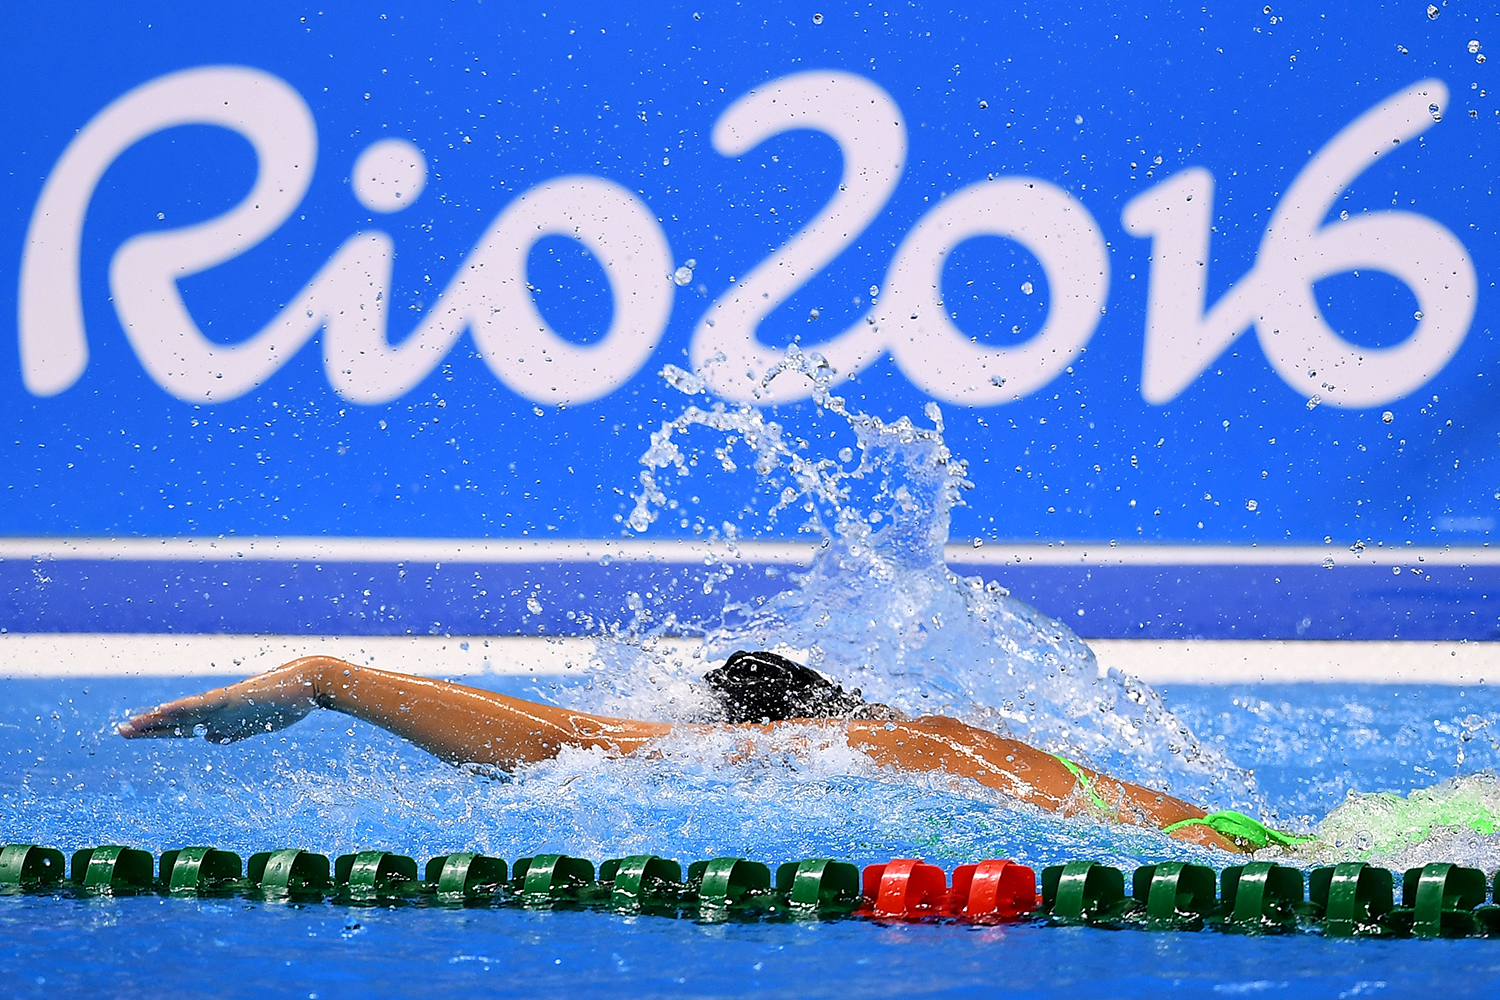 How to Watch the Rio 2016 Olympics Without Cable TV